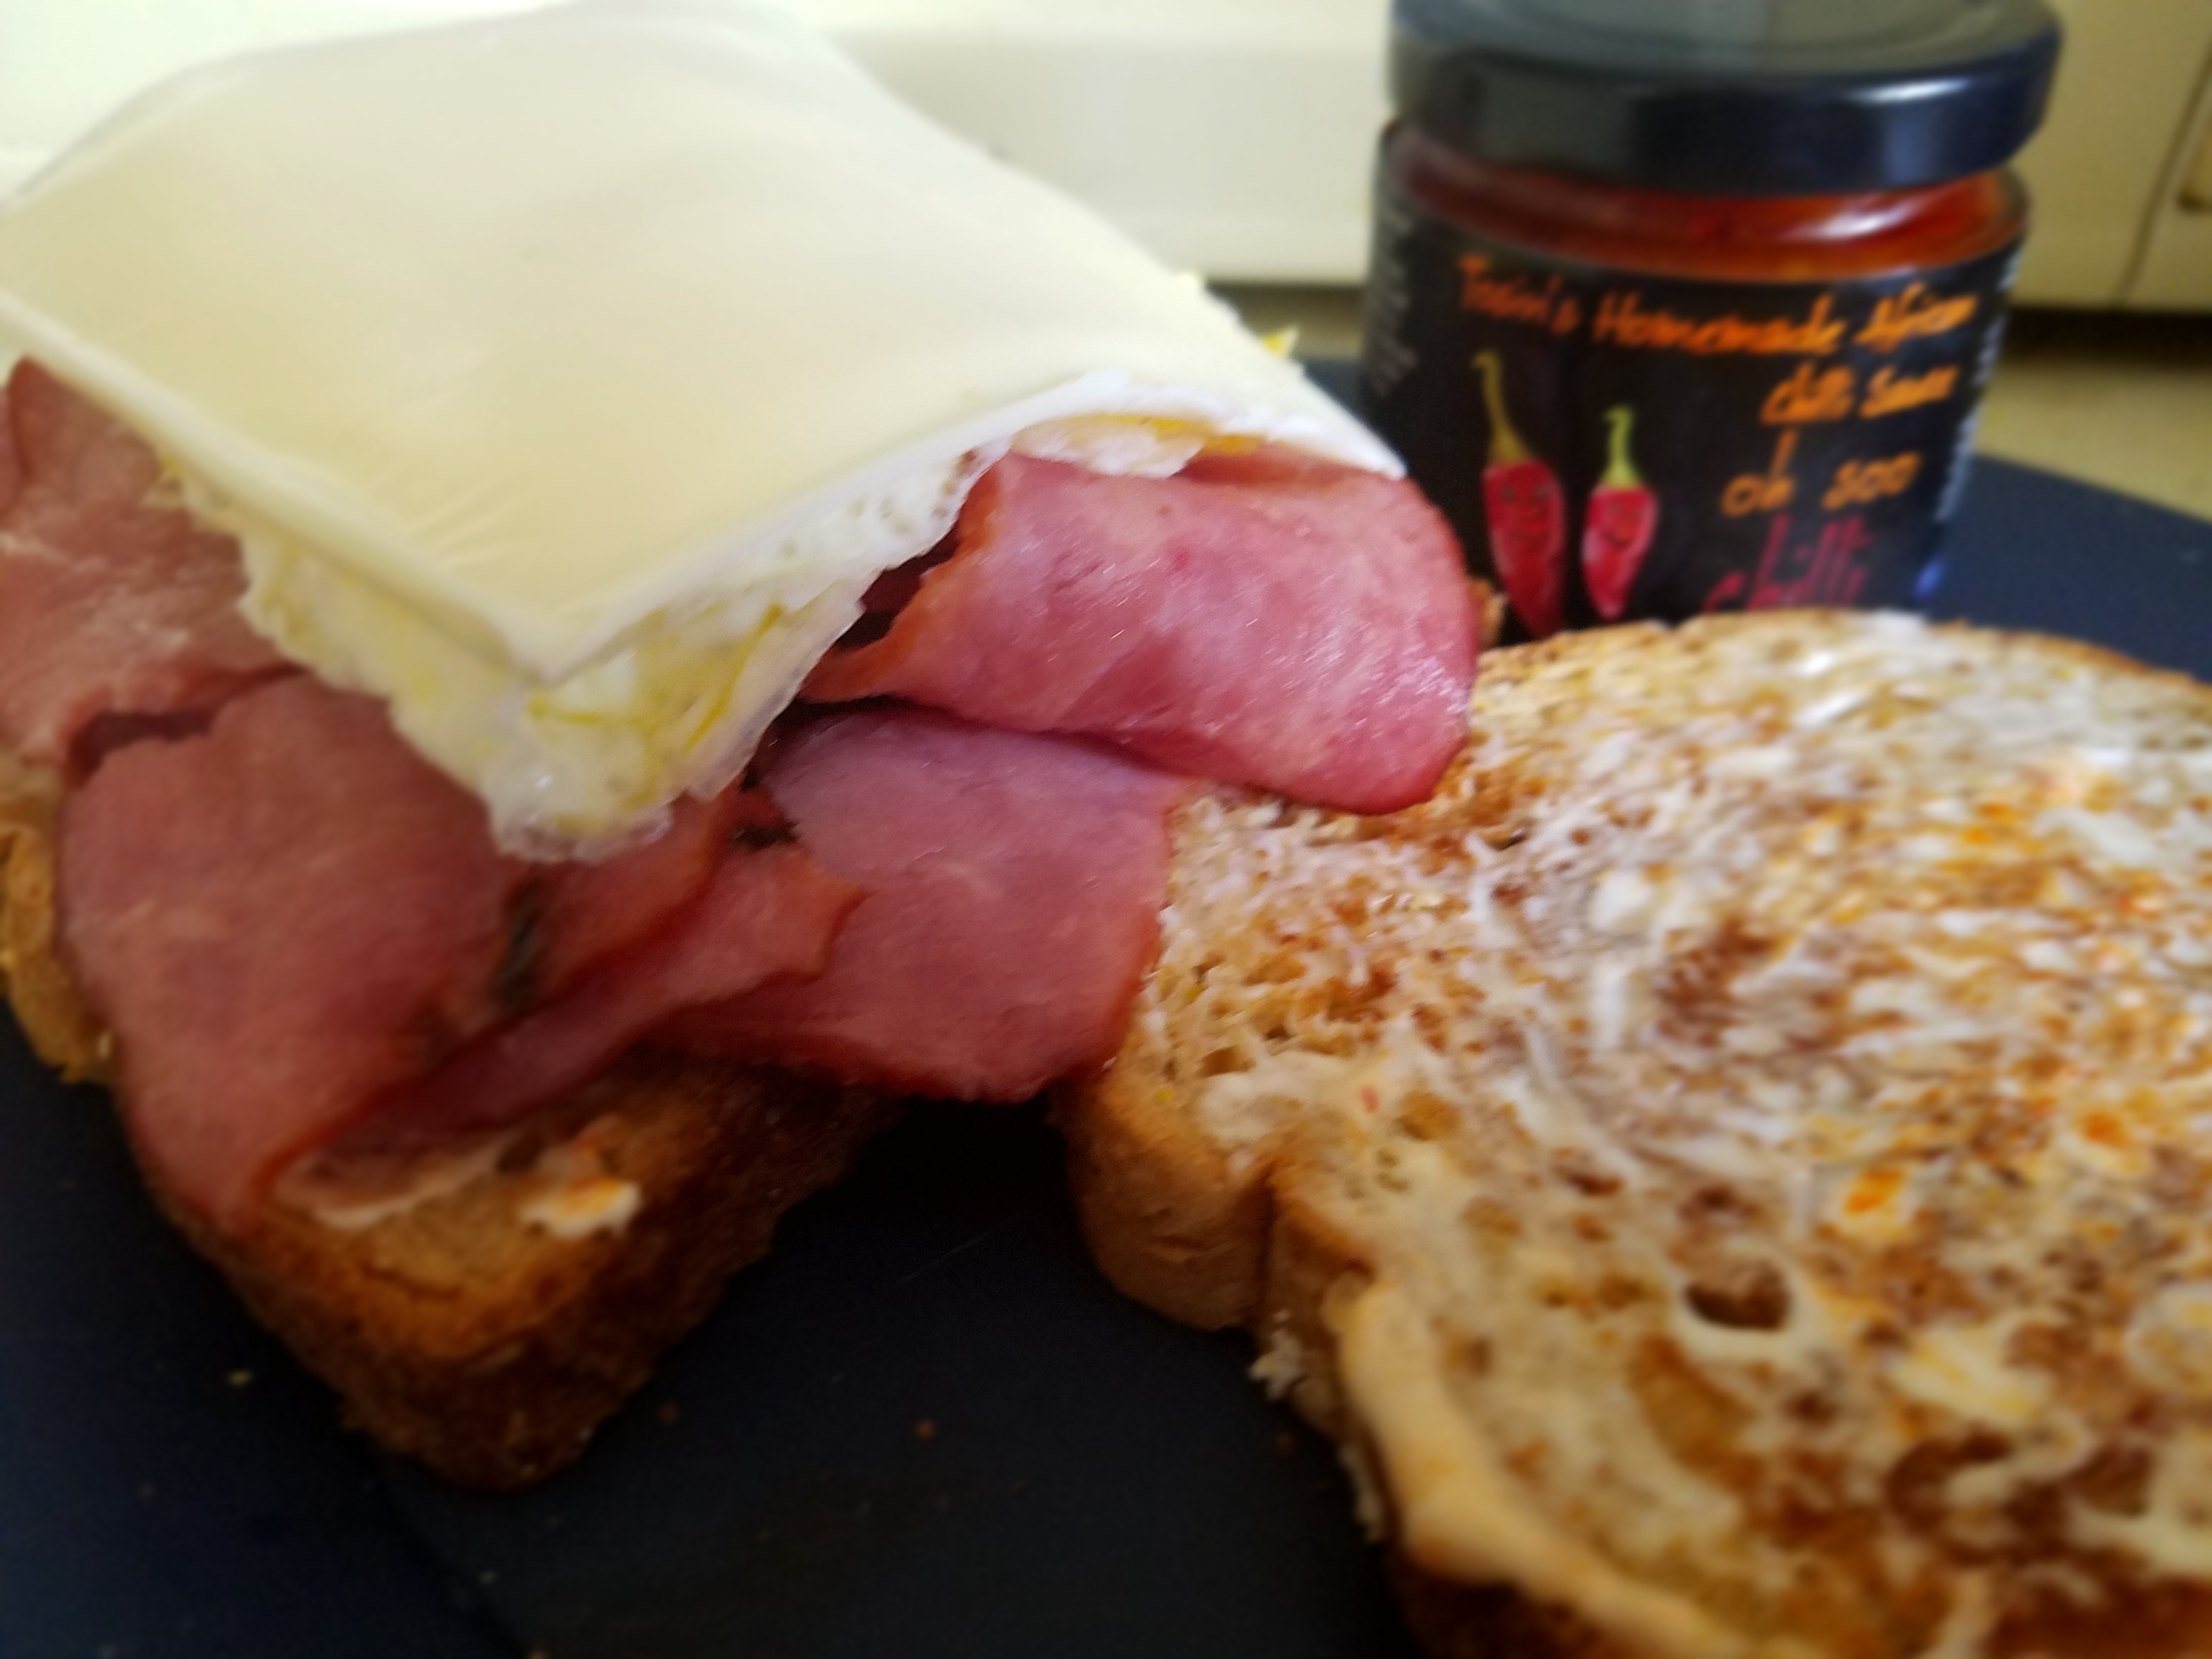 Turkey, Veggie Or Beef Bacon With Cheese And (Optional) Egg Sandwich